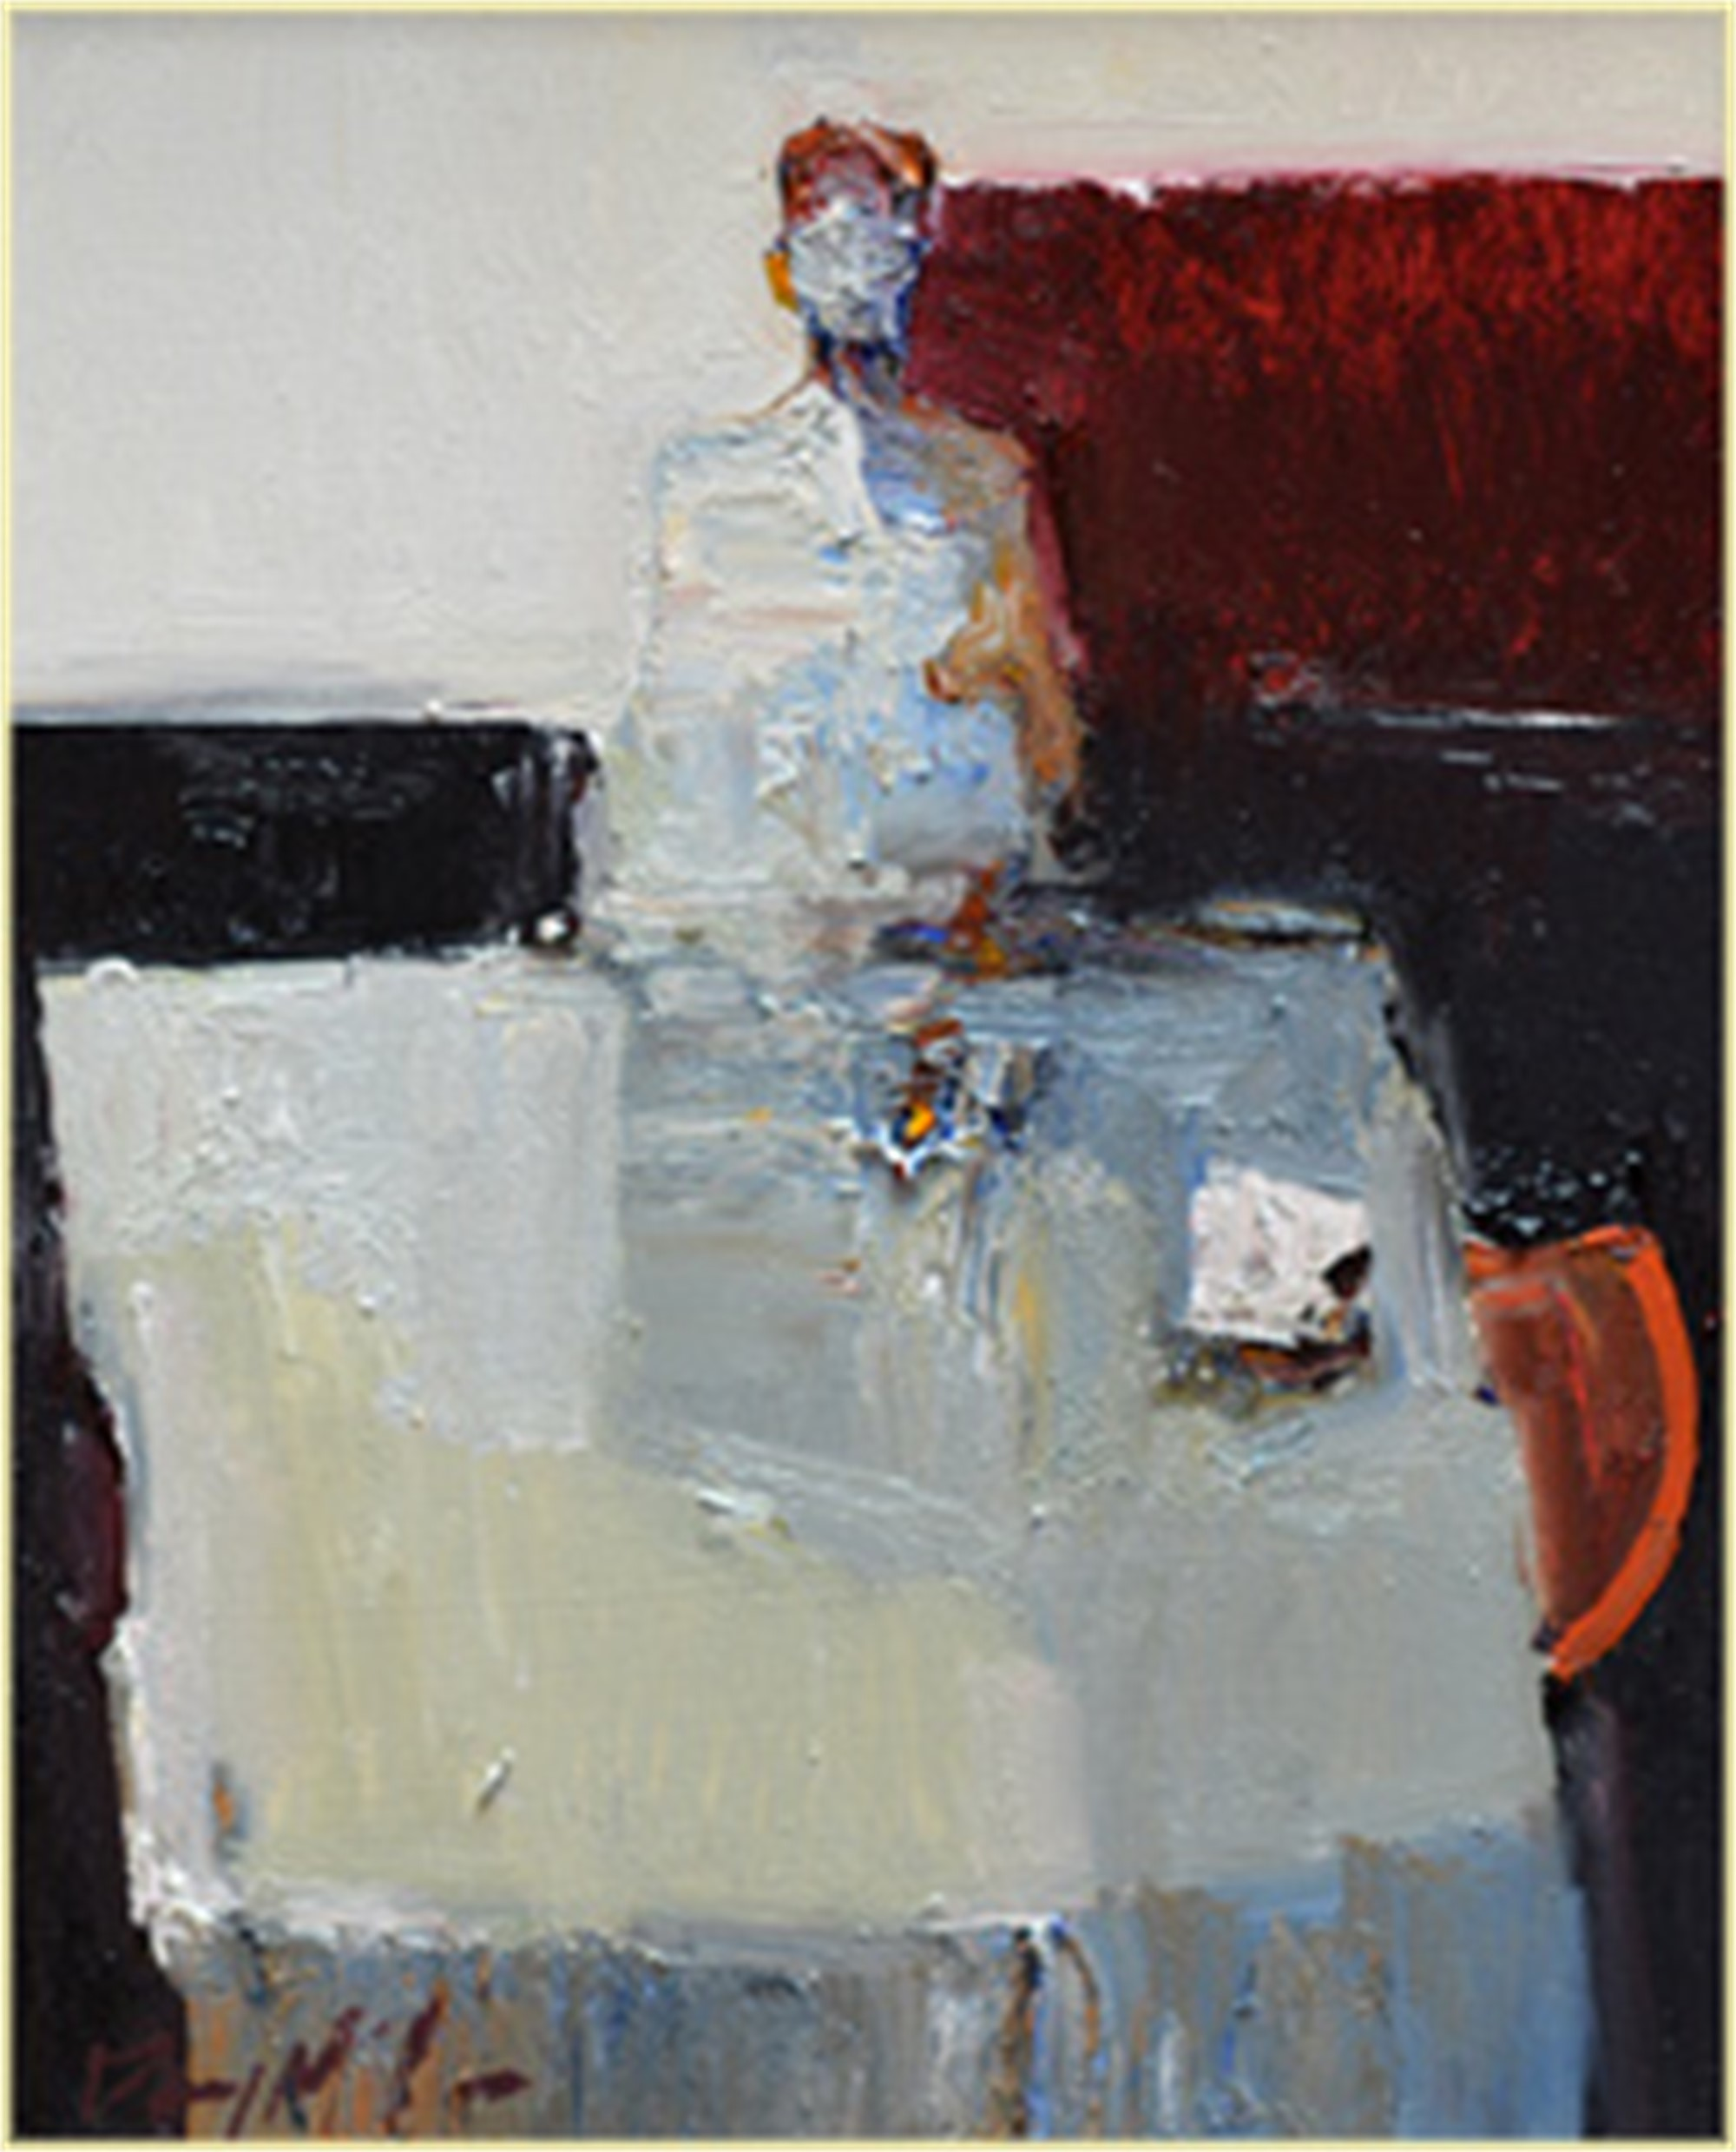 Plate on Table by Danny McCaw